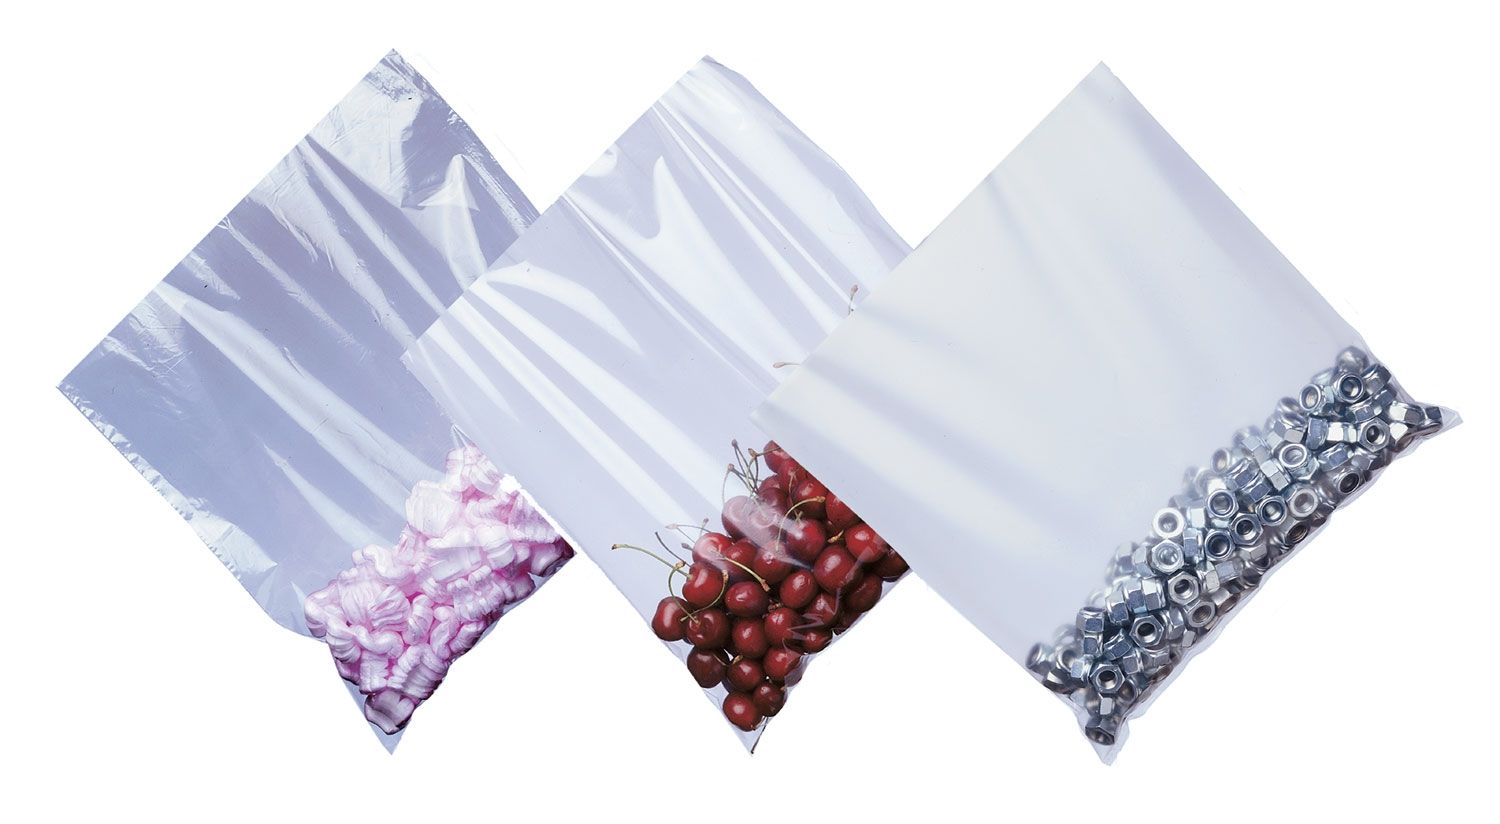 18inch X 24inch Lightweight Clear Easy Opening Poly Bags